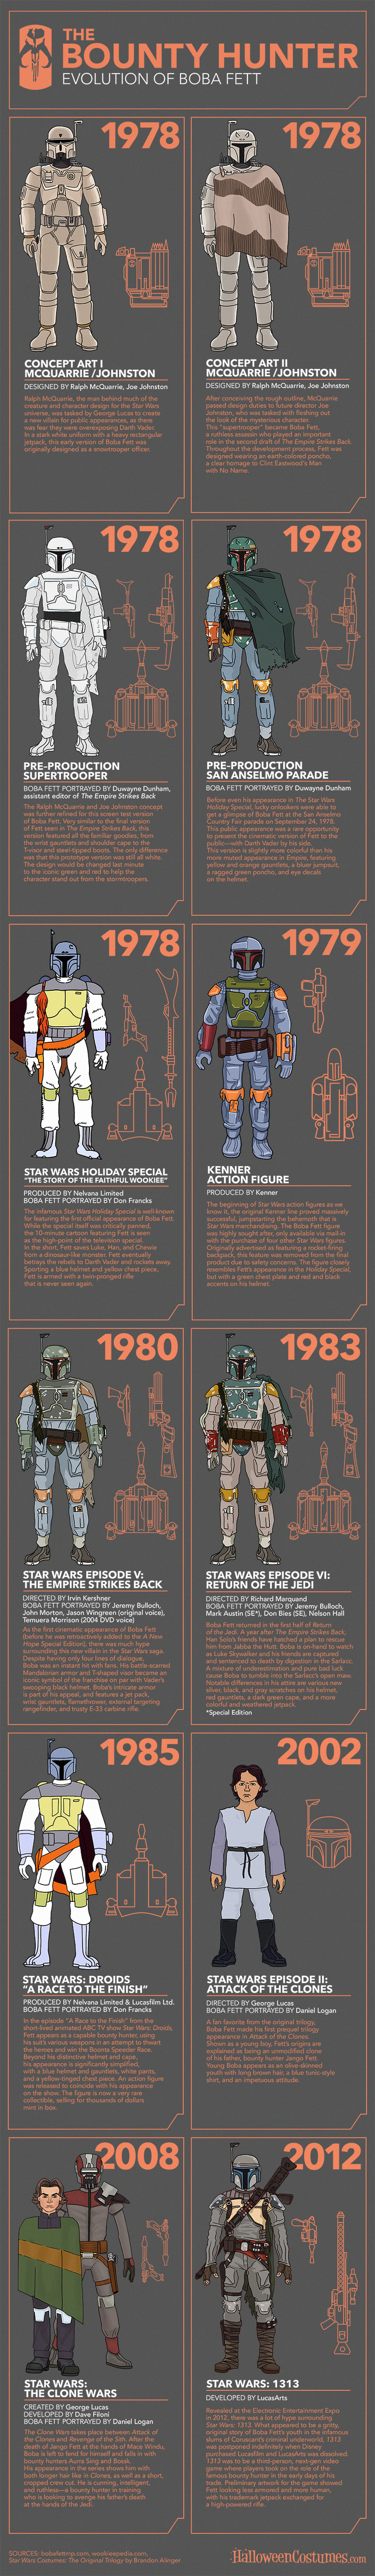 star-wars-infographic-shows-the-evolution-of-boba-fett